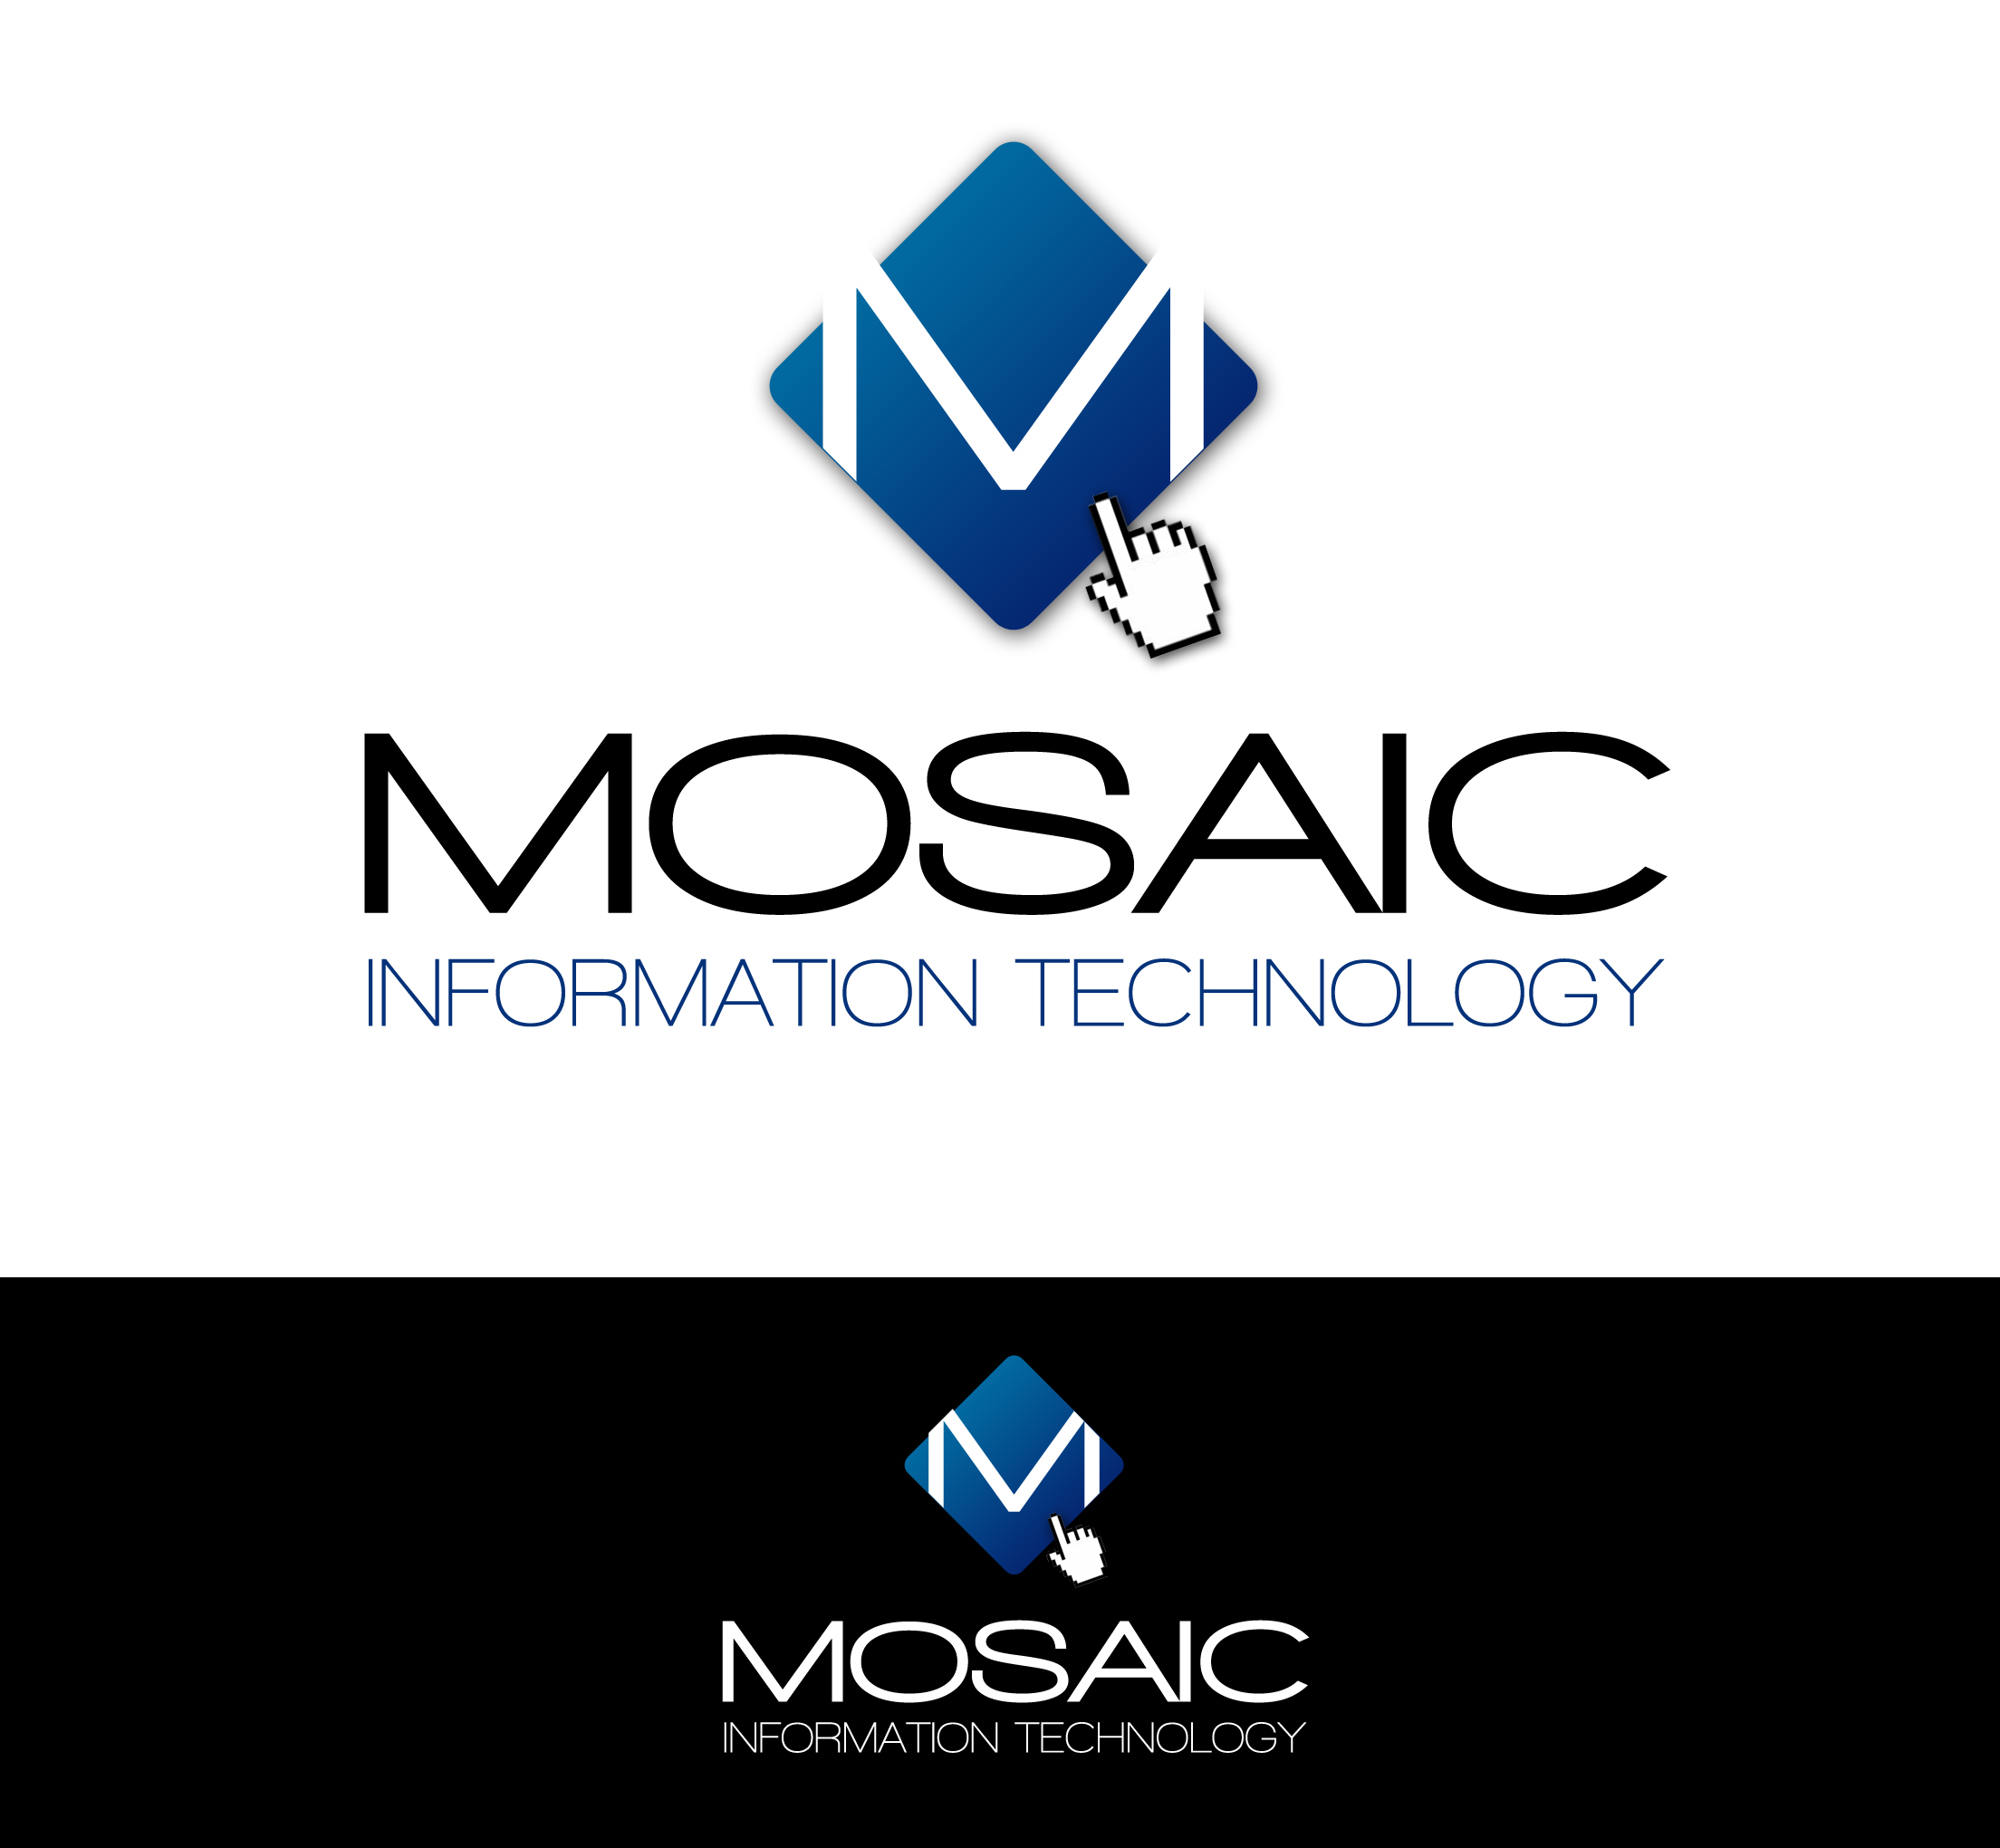 Logo Design by Lama Creative - Entry No. 61 in the Logo Design Contest Mosaic Information Technology Logo Design.